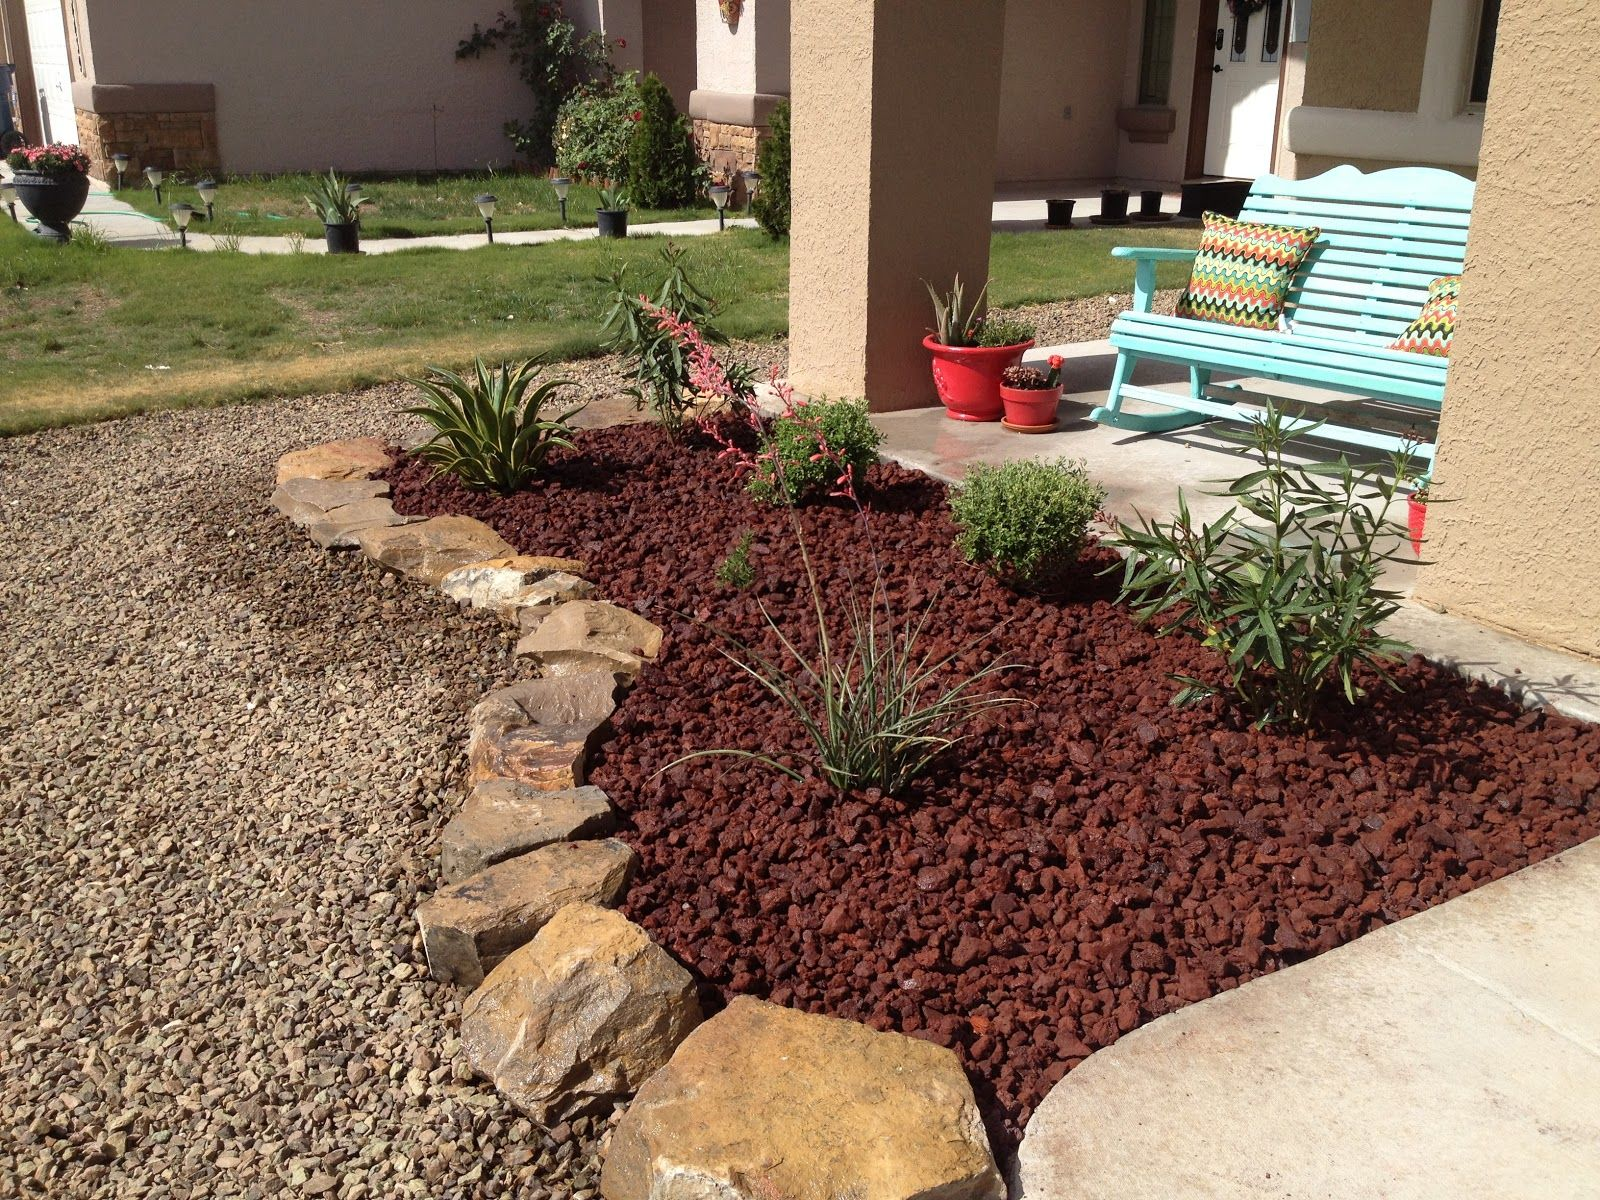 garden landscaping ideas pictures of landscape inspiration on inspiring trends front yard landscaping ideas minimal budget id=88484